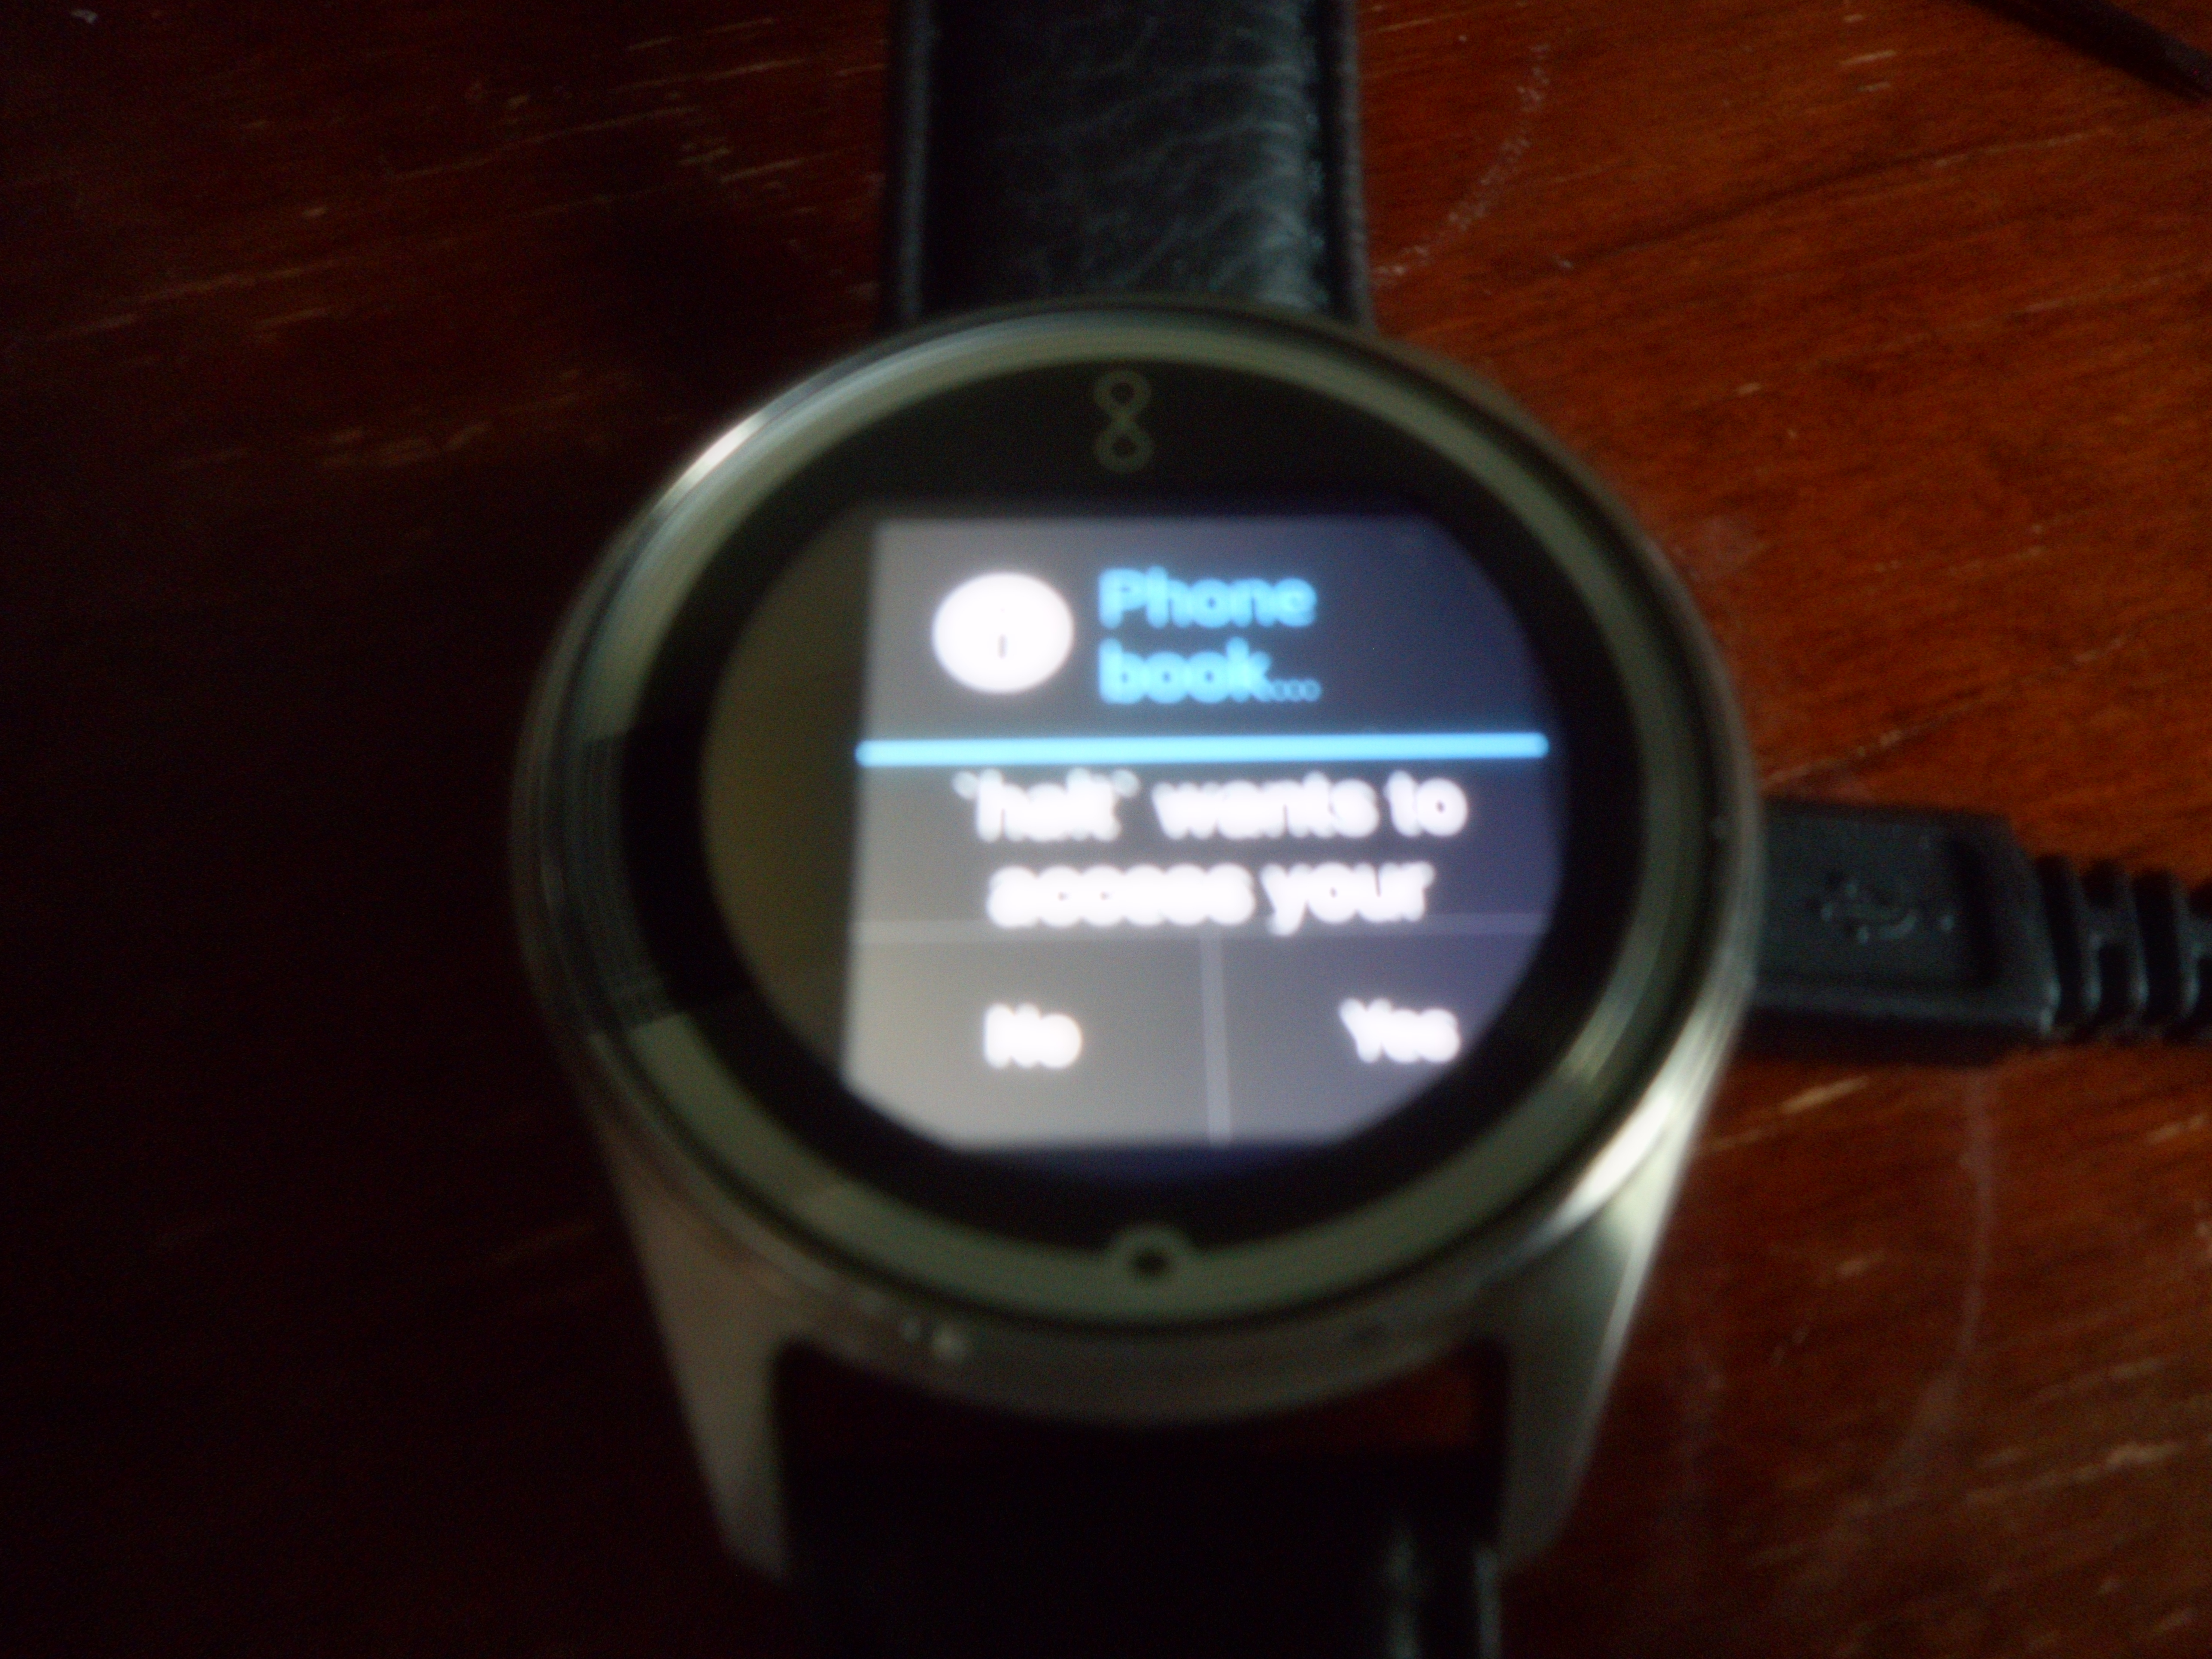 Olio Model One Smartwatch The Pebble Smart Watch Will Include A Flexible Circuit Board Captainbilly Slightly Better Image Asking If I Want To Grant Permission My Phone Book